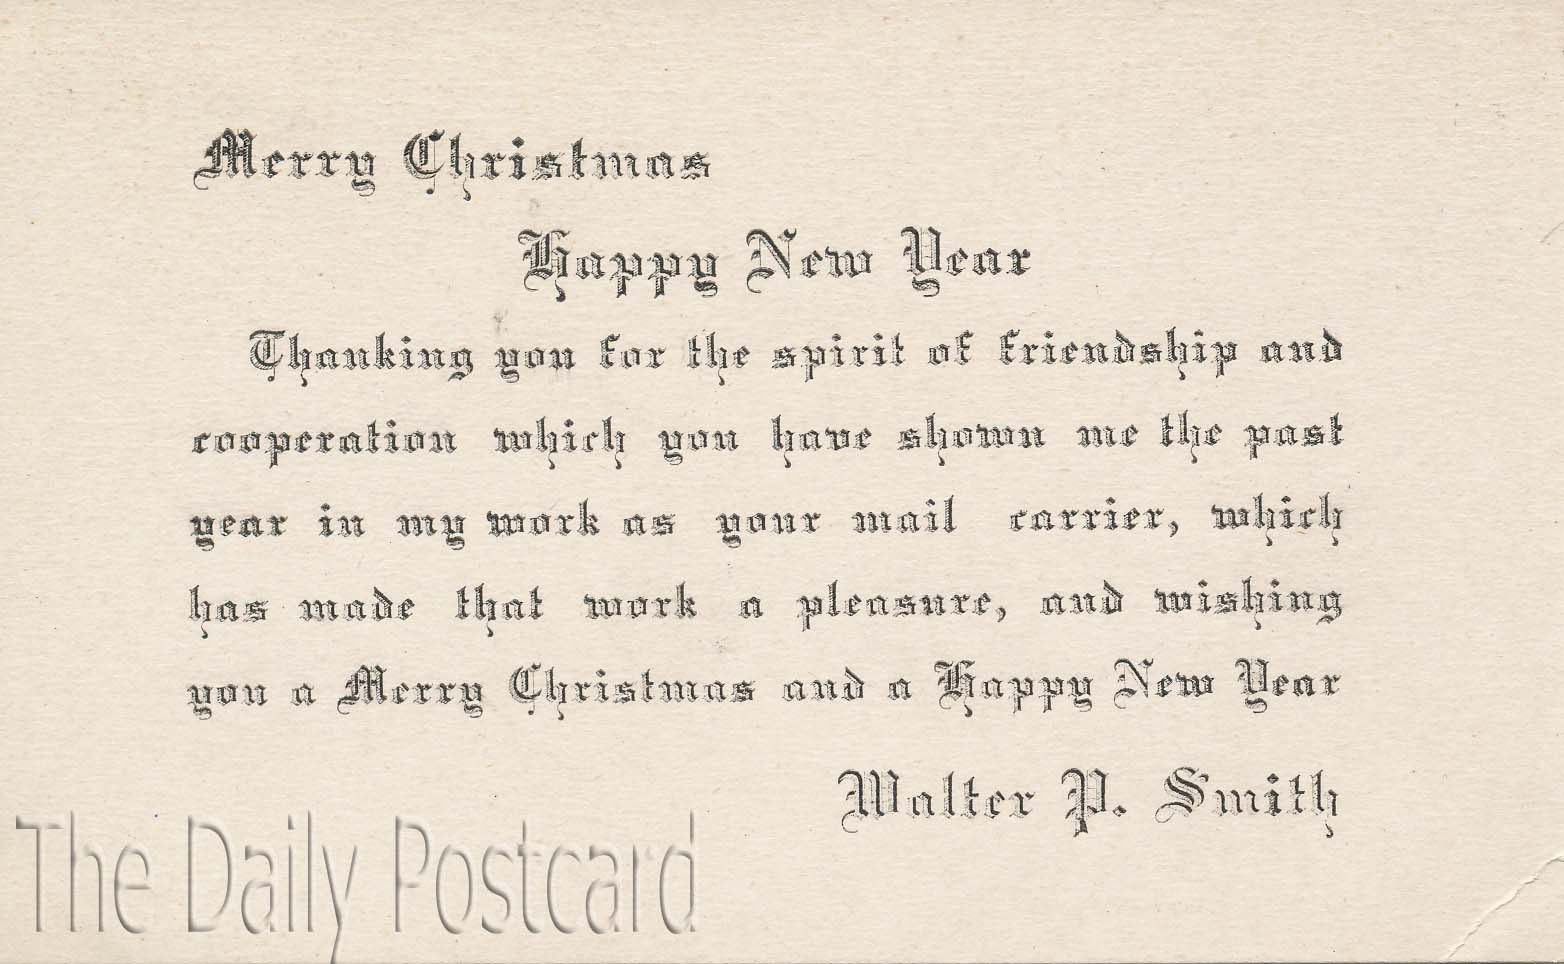 The Daily Postcard Happy New Year From Walter P Smith